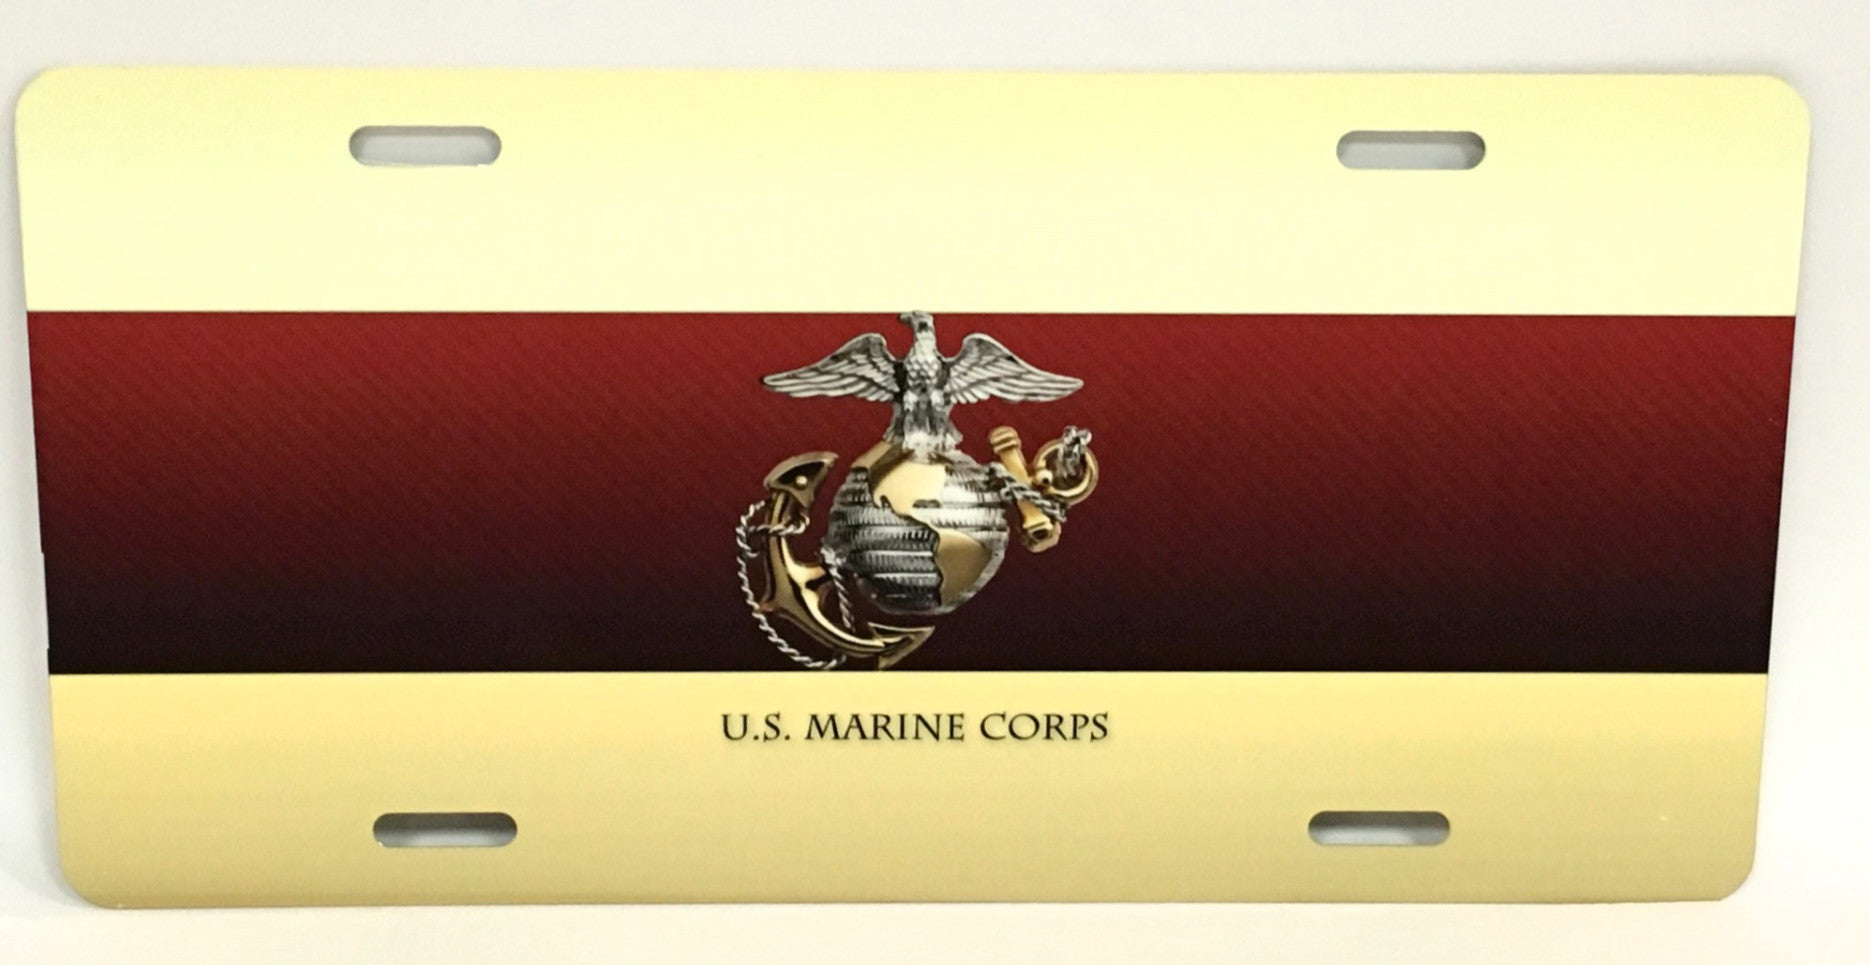 U.S. Marine Corps Red/Gold License Plate